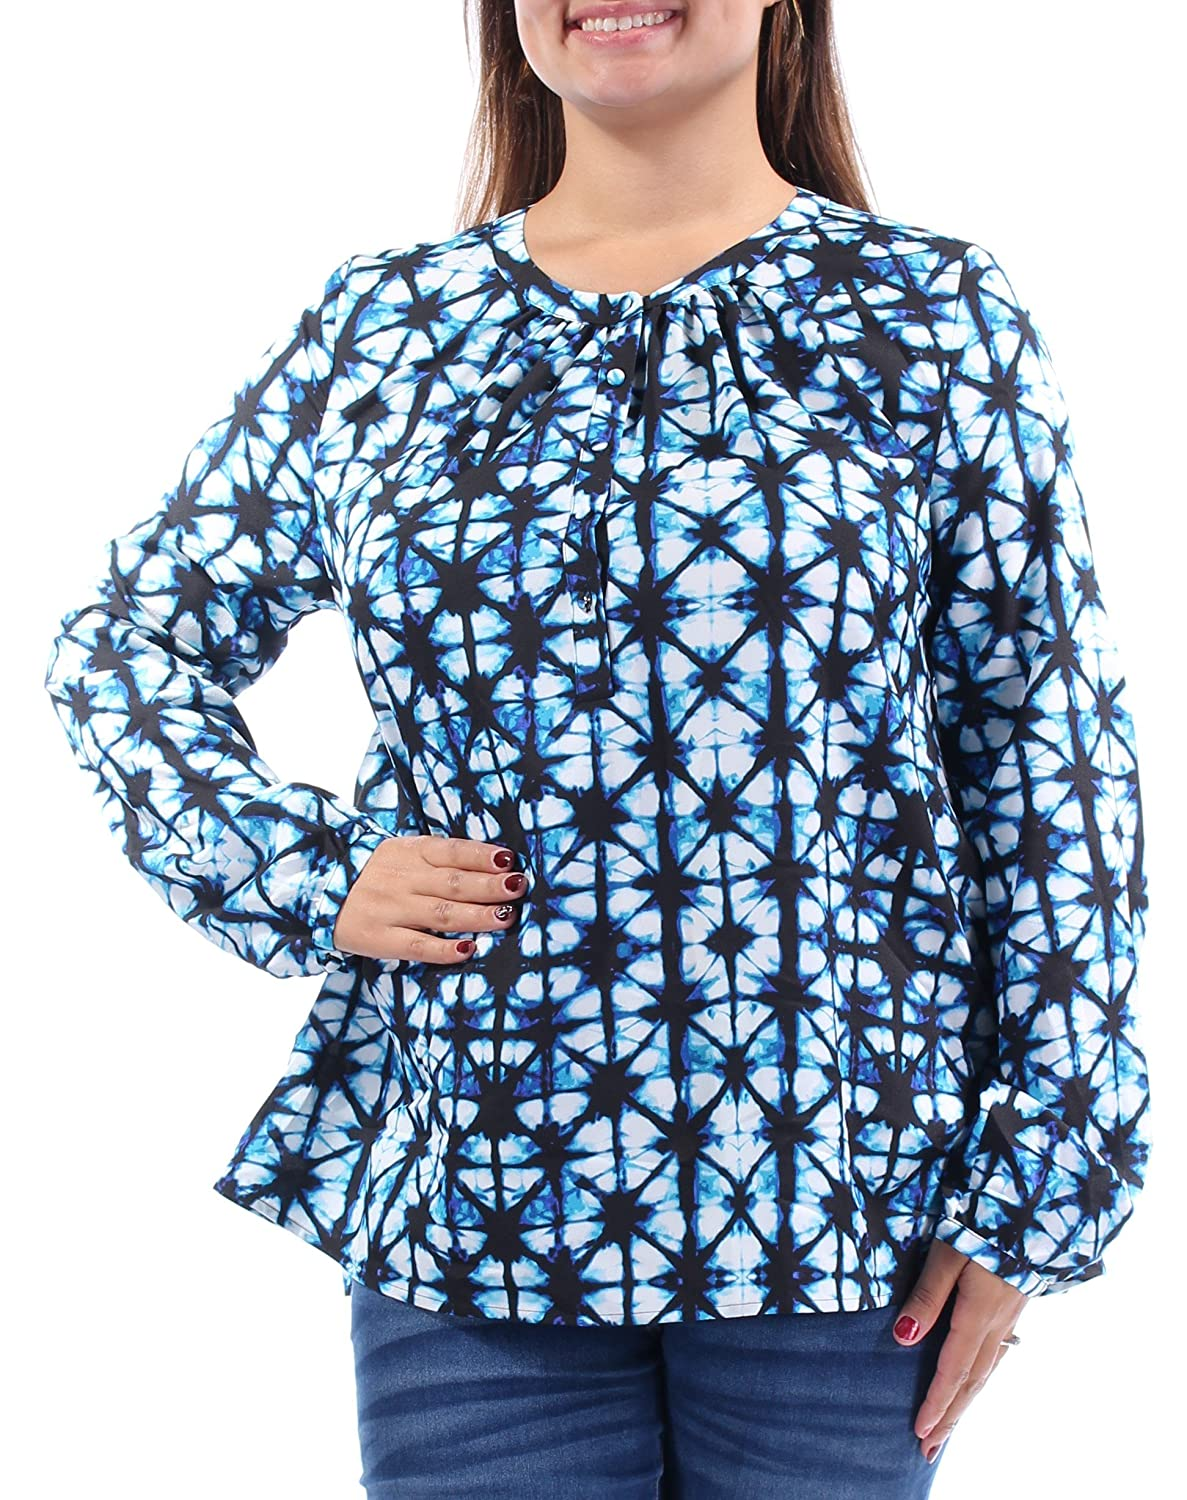 9016aa2a Tommy Hilfiger Women's Printed Long Sleeve Blouse Size M at Amazon Women's  Clothing store: